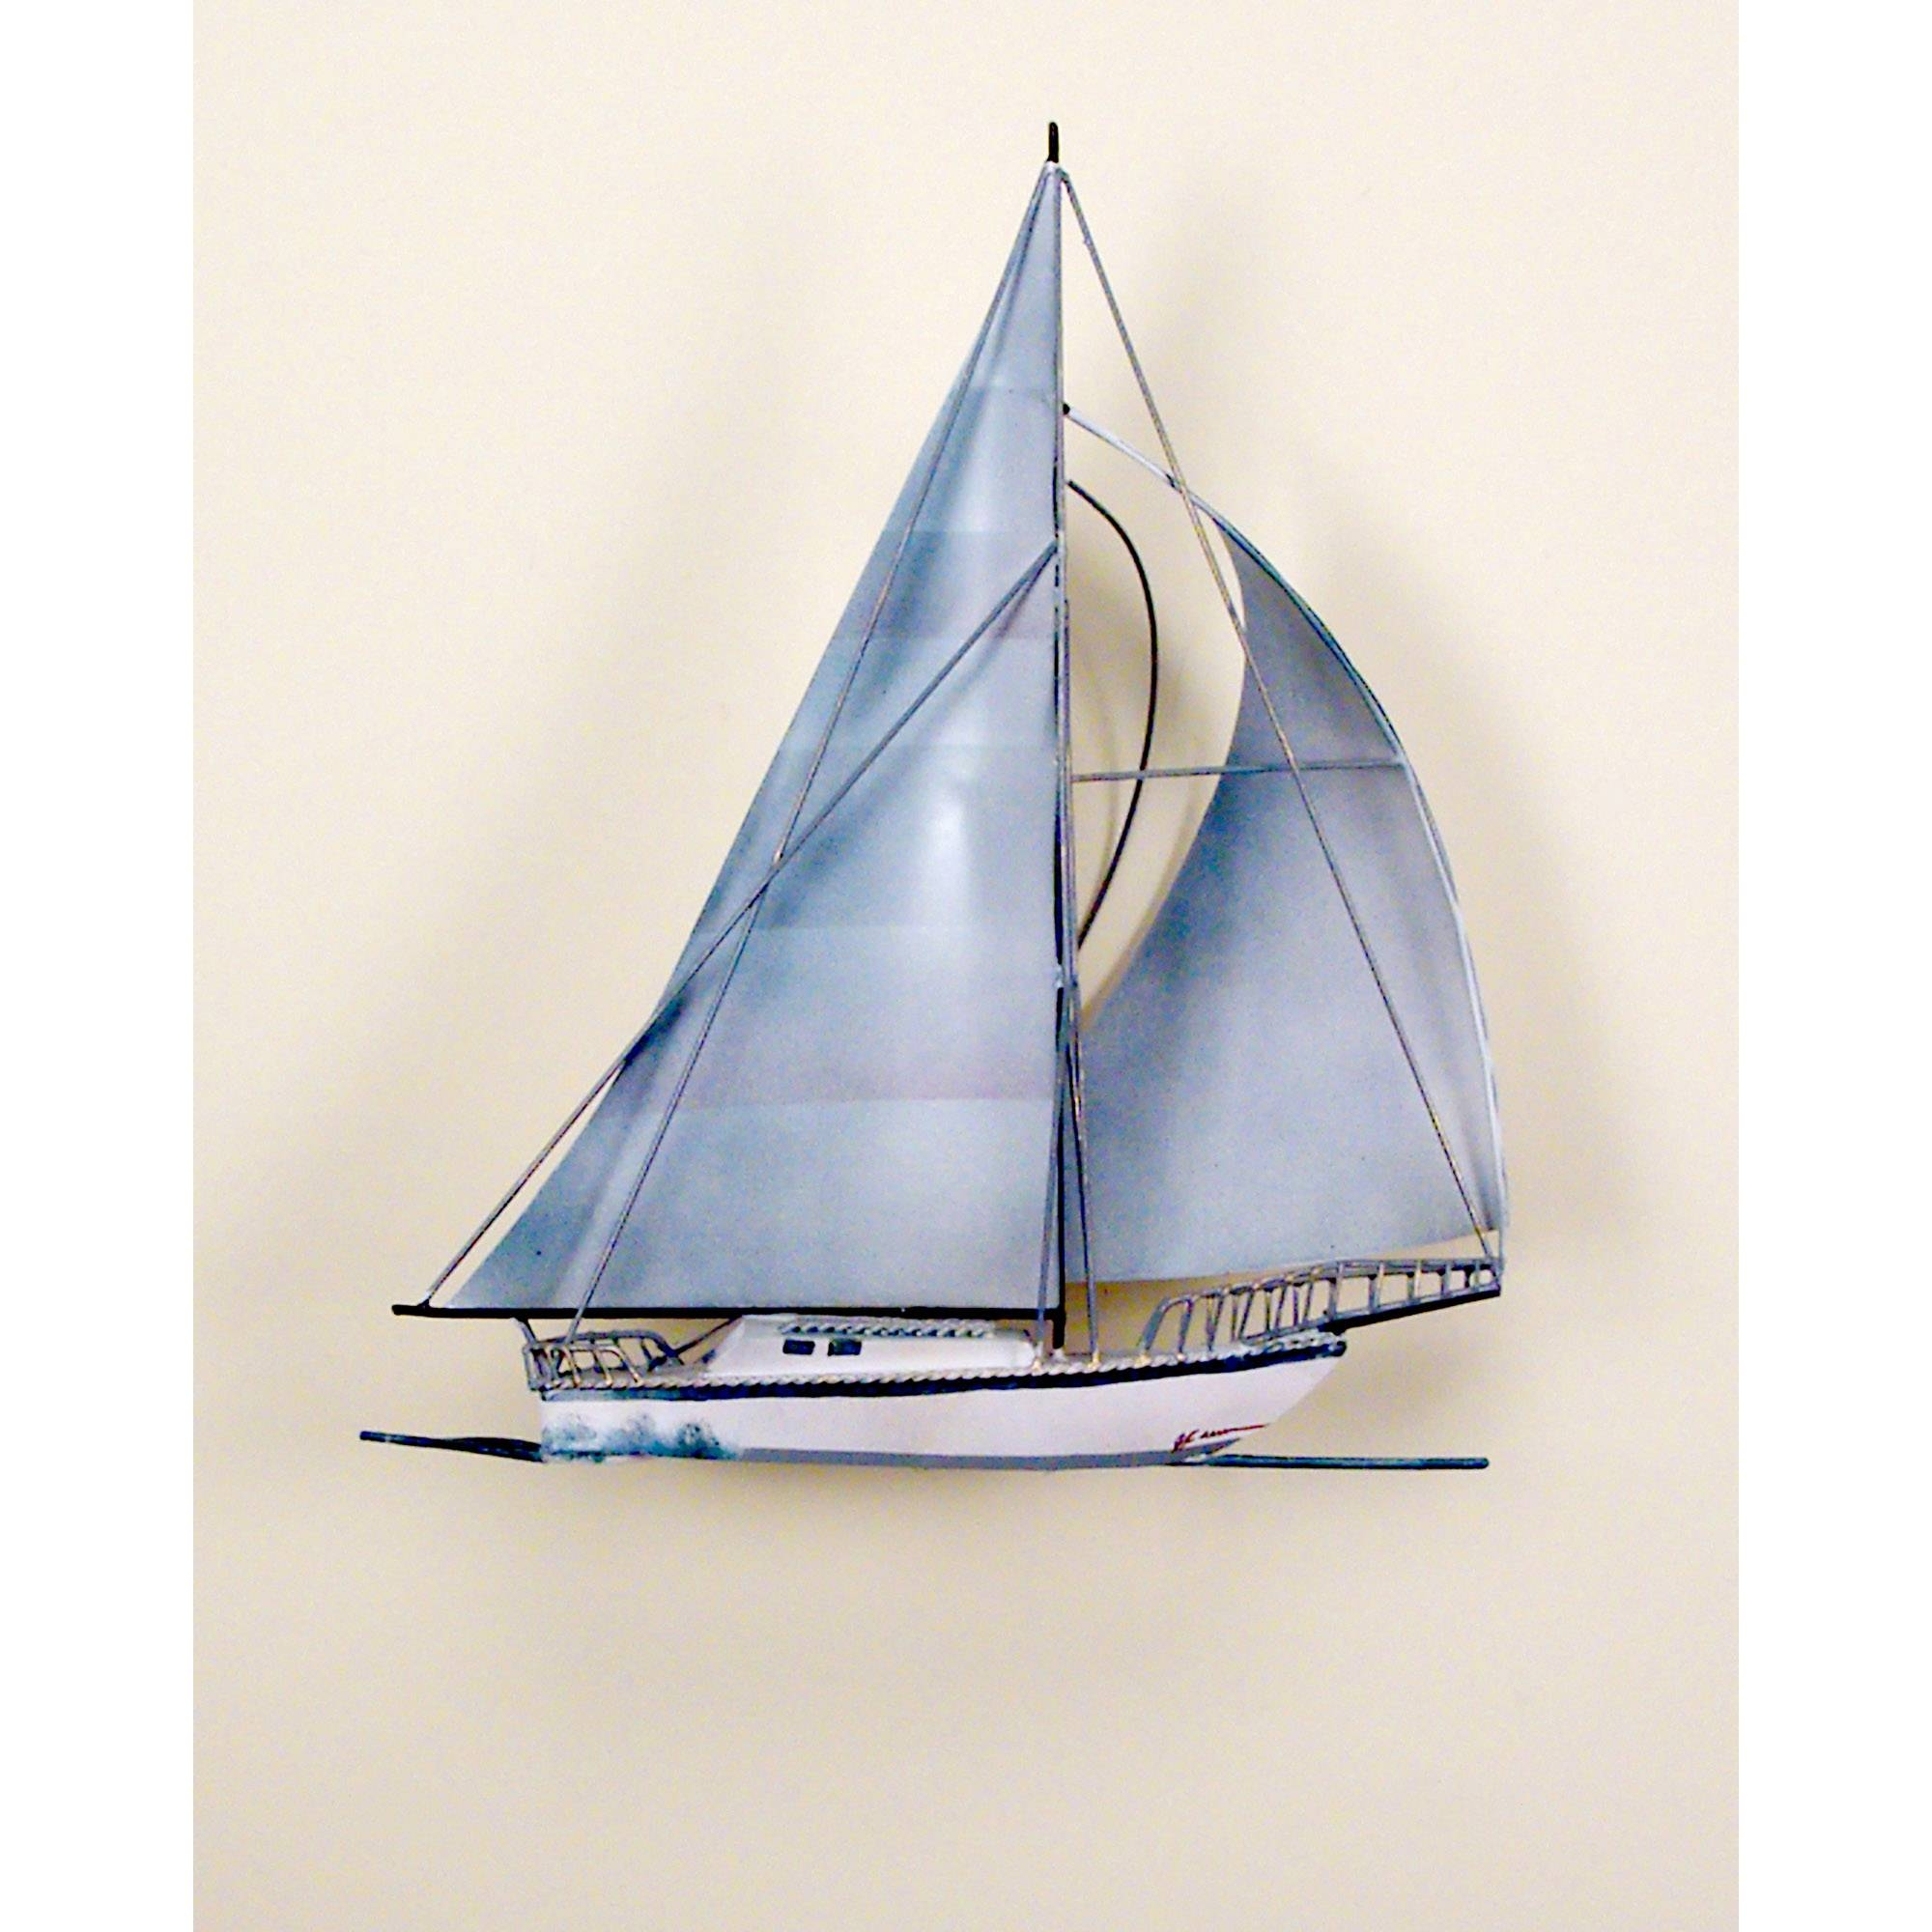 Windjamer Sailboat, Single, Ocean, Boat, Nautical, Sailing Intended For Most Current Metal Wall Art Ships (View 12 of 20)